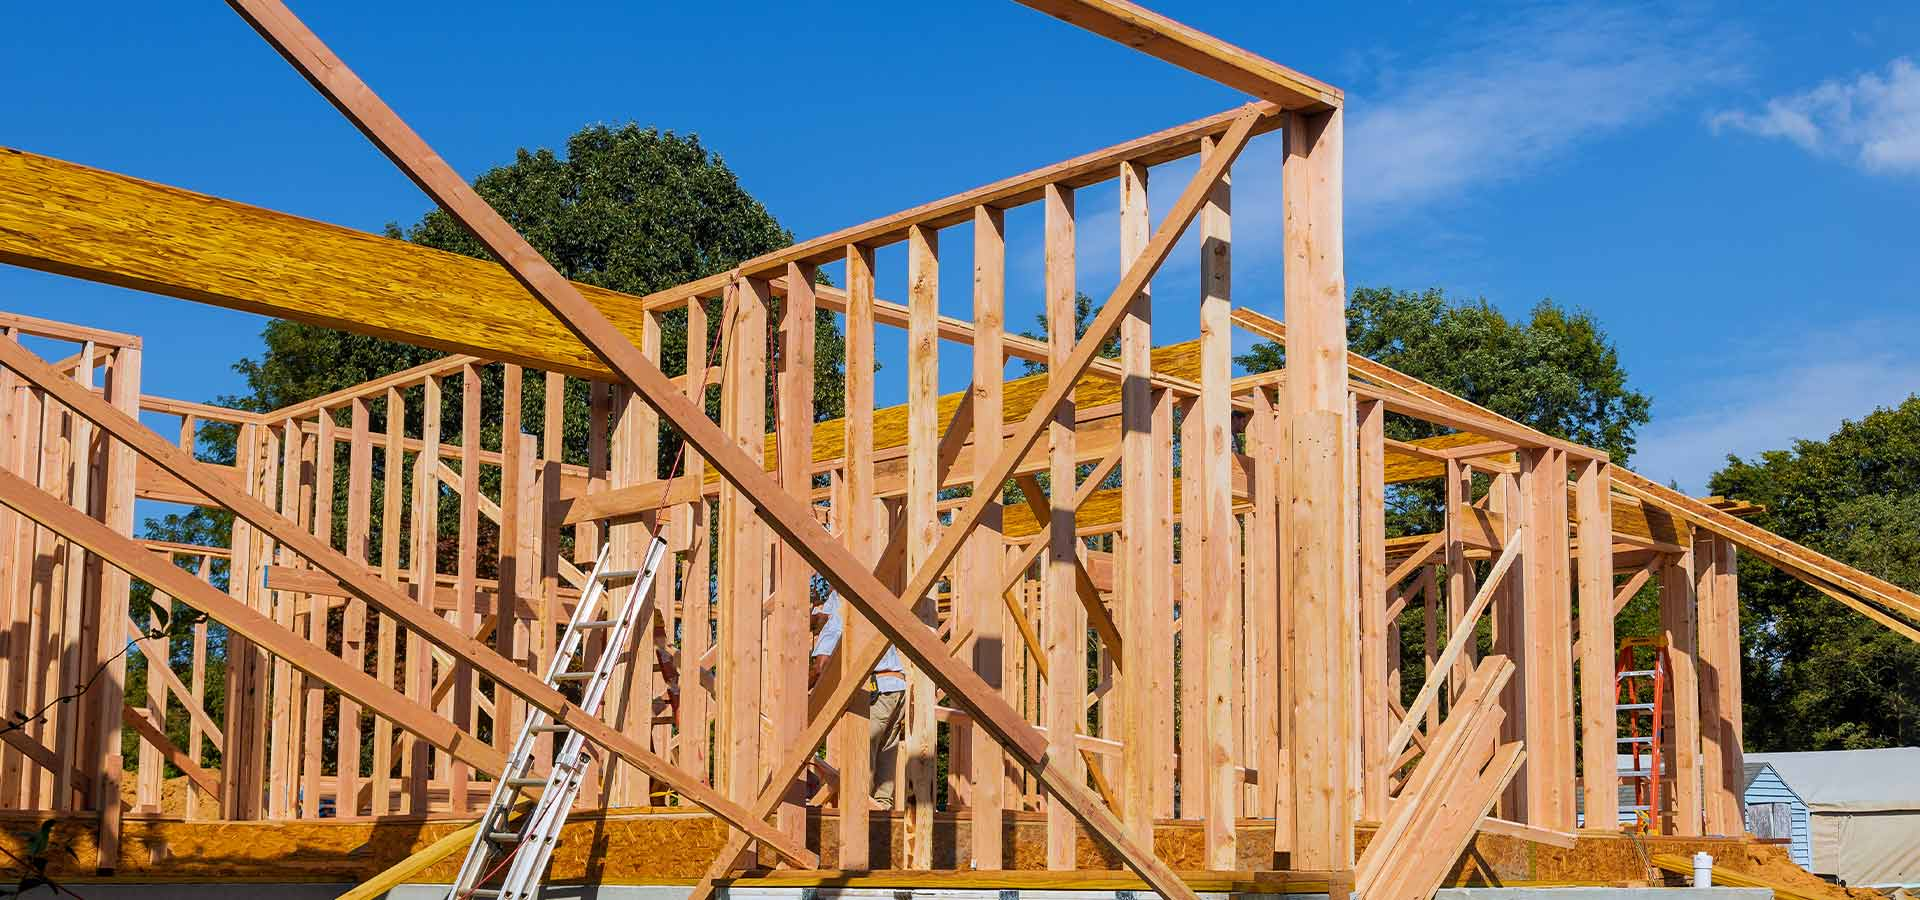 Private Contractor Partnership Breaks Ground on New Affordable Housing Options